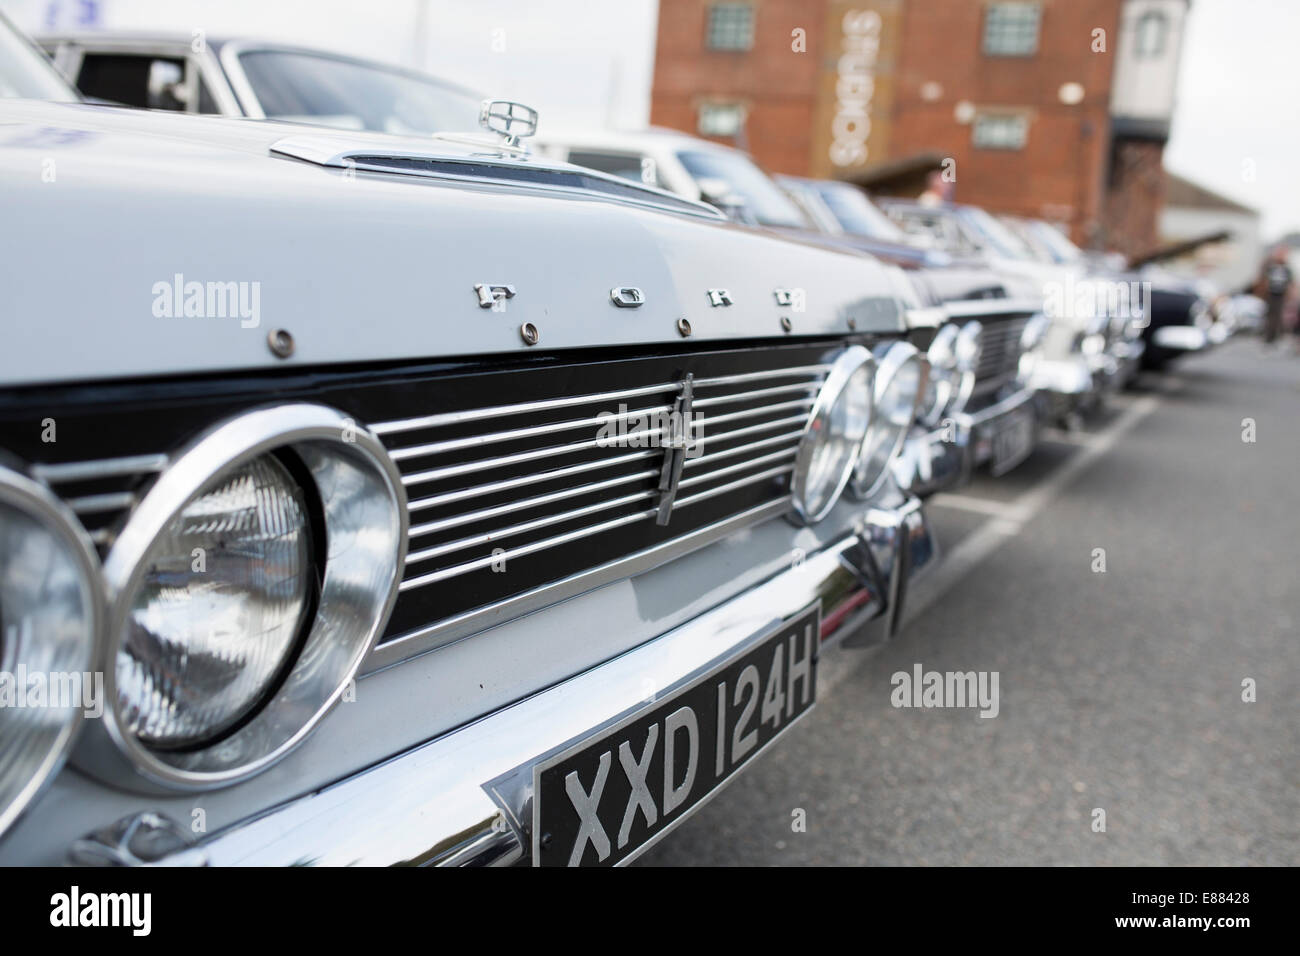 Classic Ford Zodiac motor car grill with badge in a row with other ...